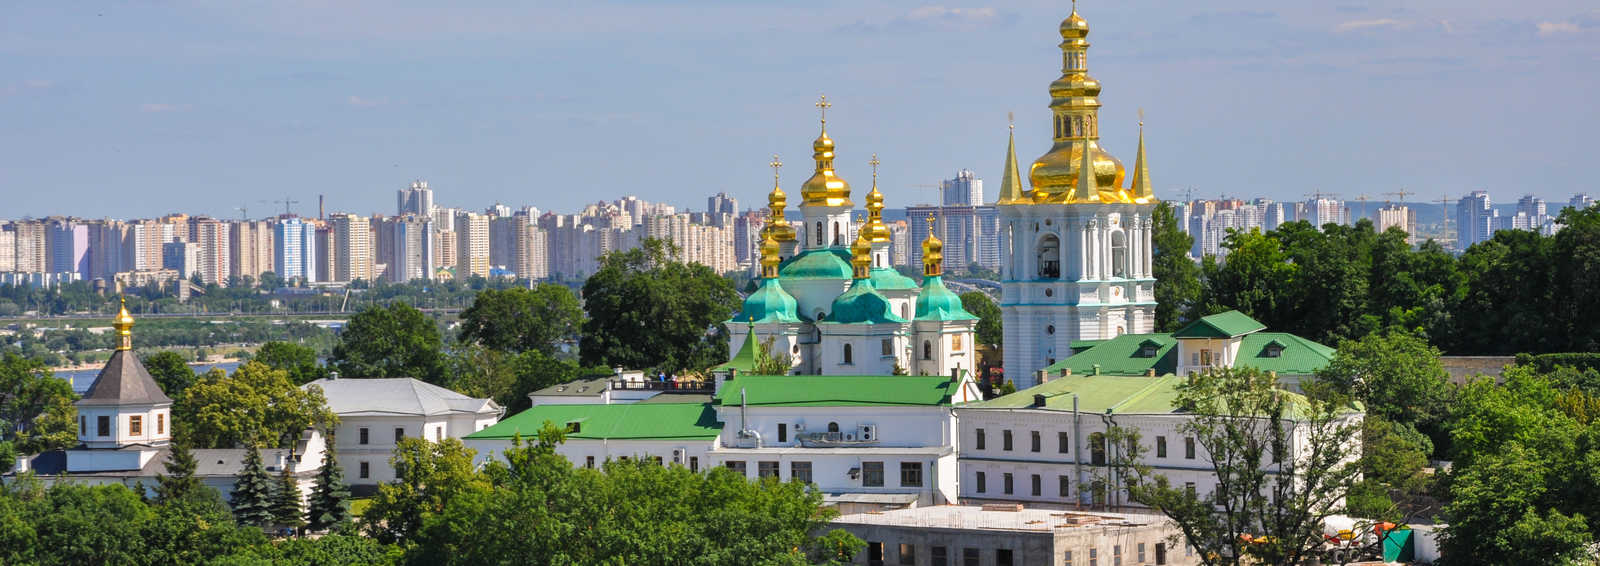 Panoramic view of Kiev Pechersk Lavra in Kyiv, Ukraine